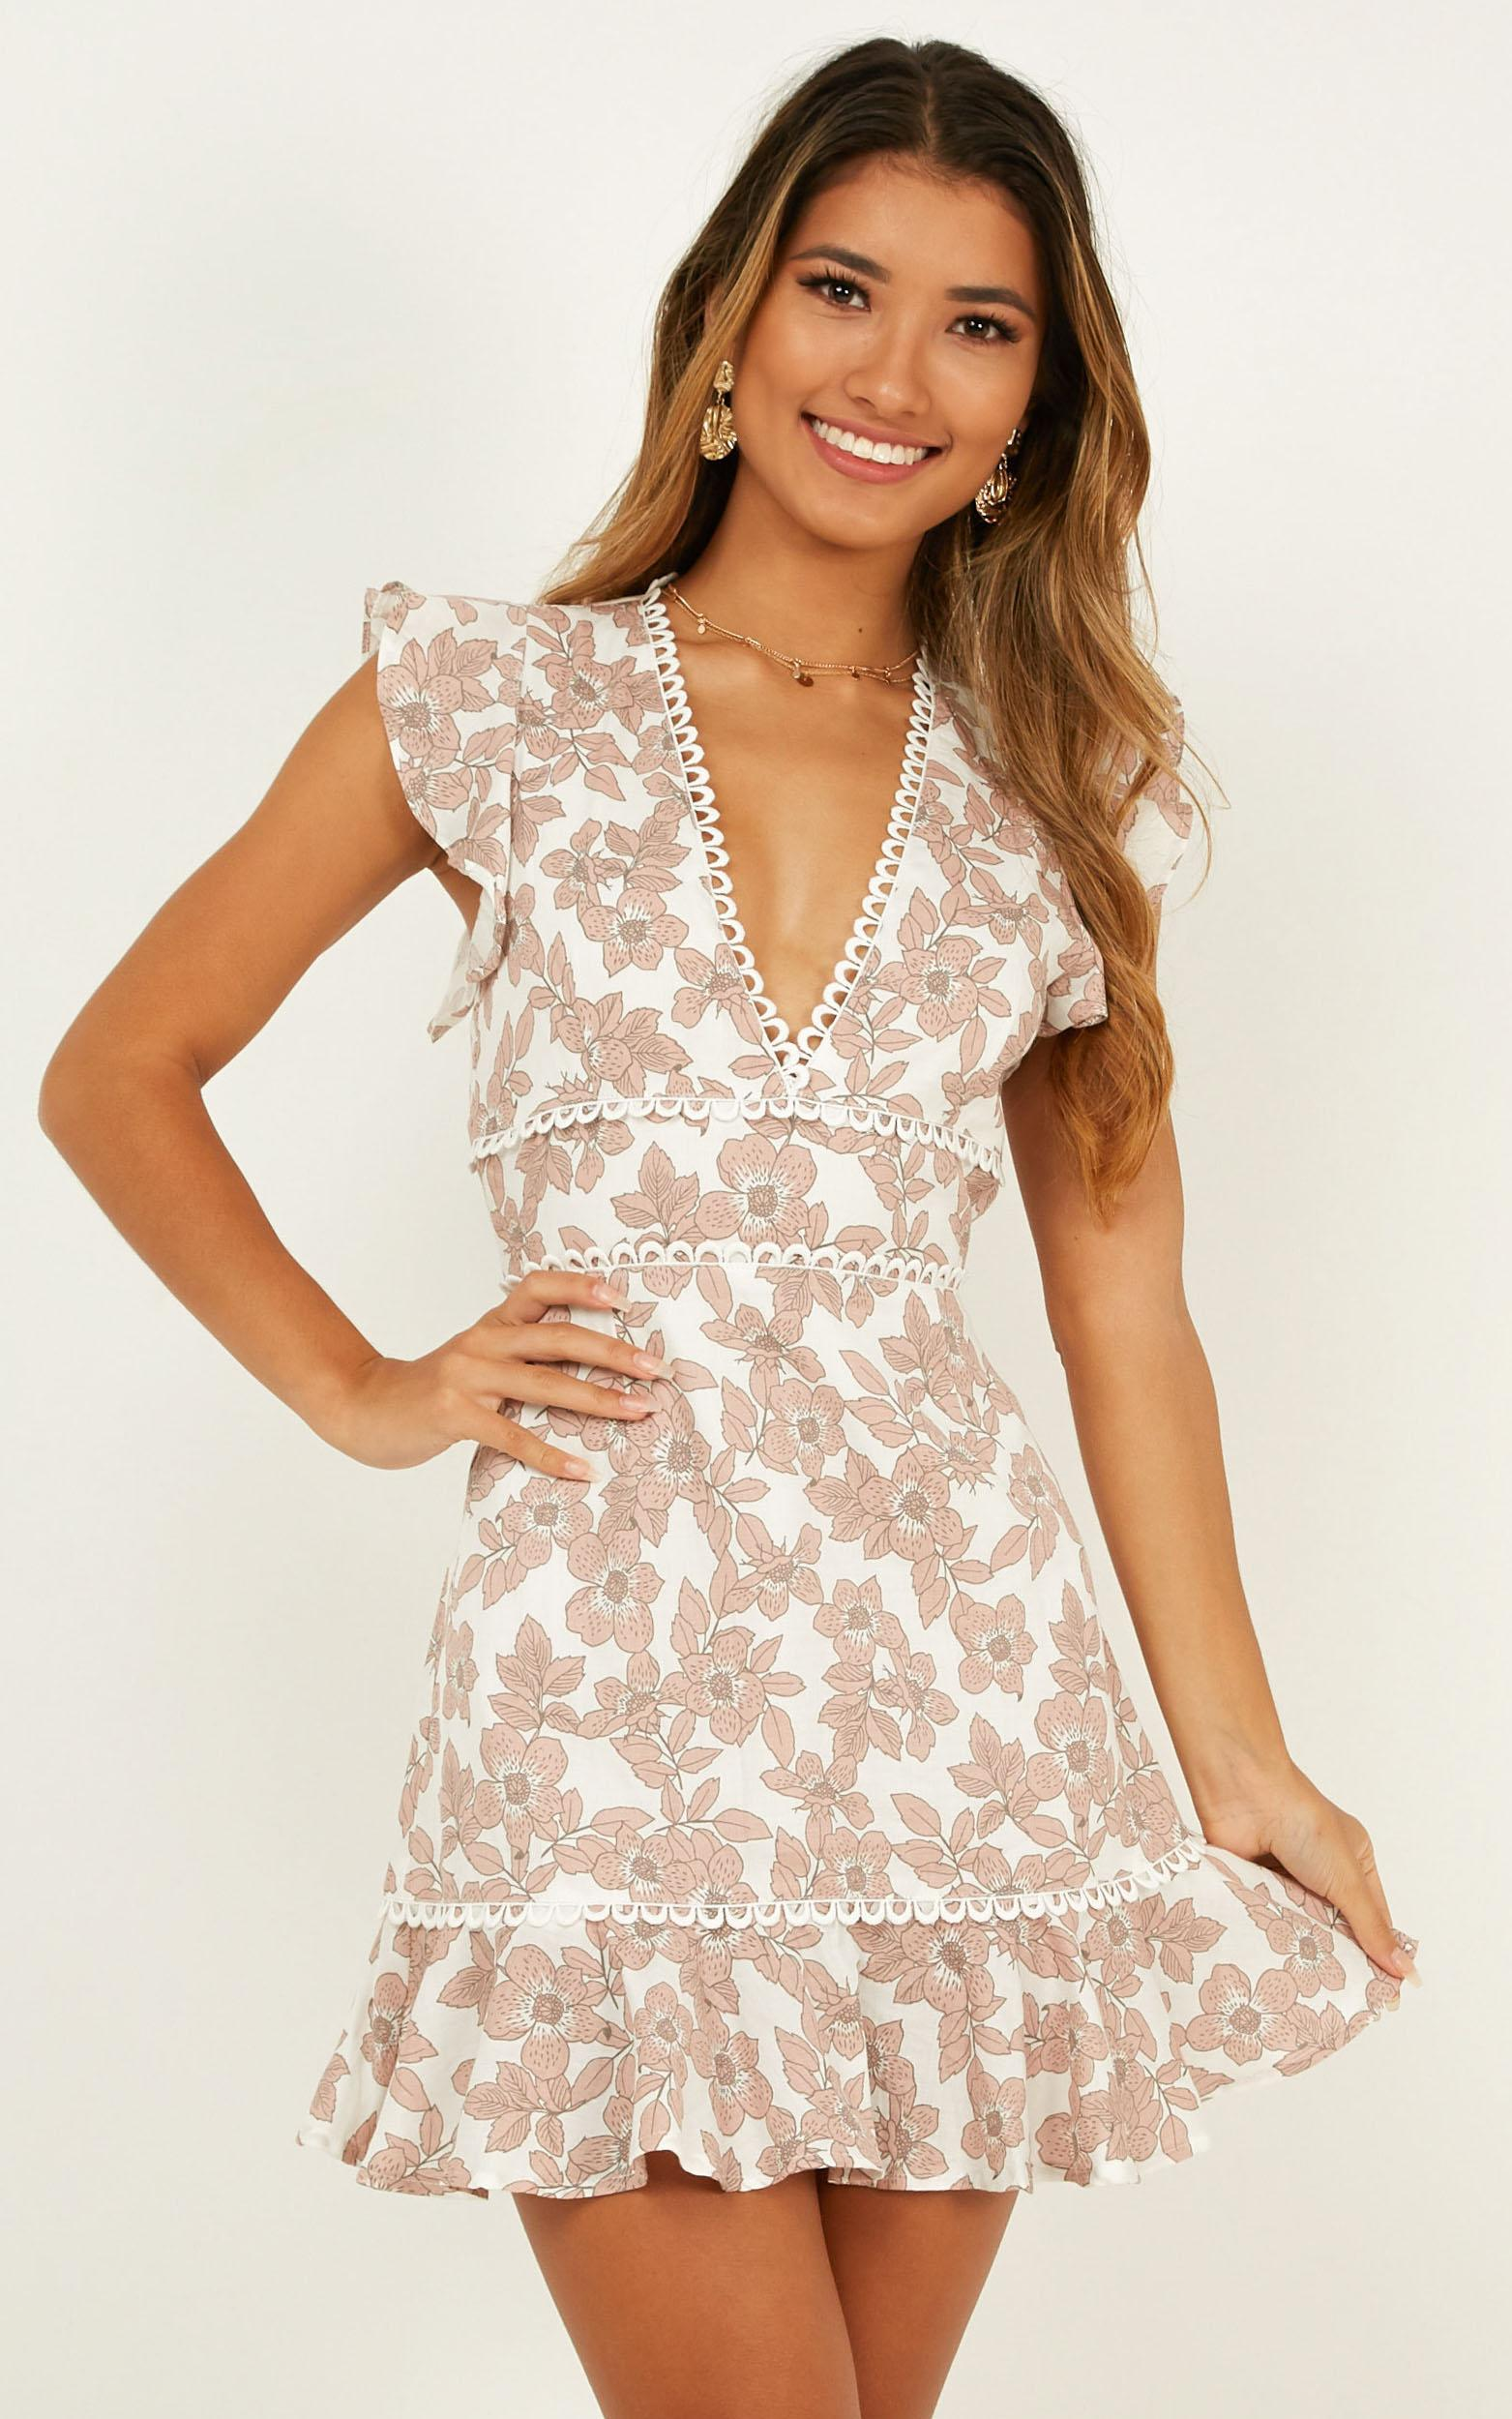 Down time dress in blush floral - 20 (XXXXL), Blush, hi-res image number null